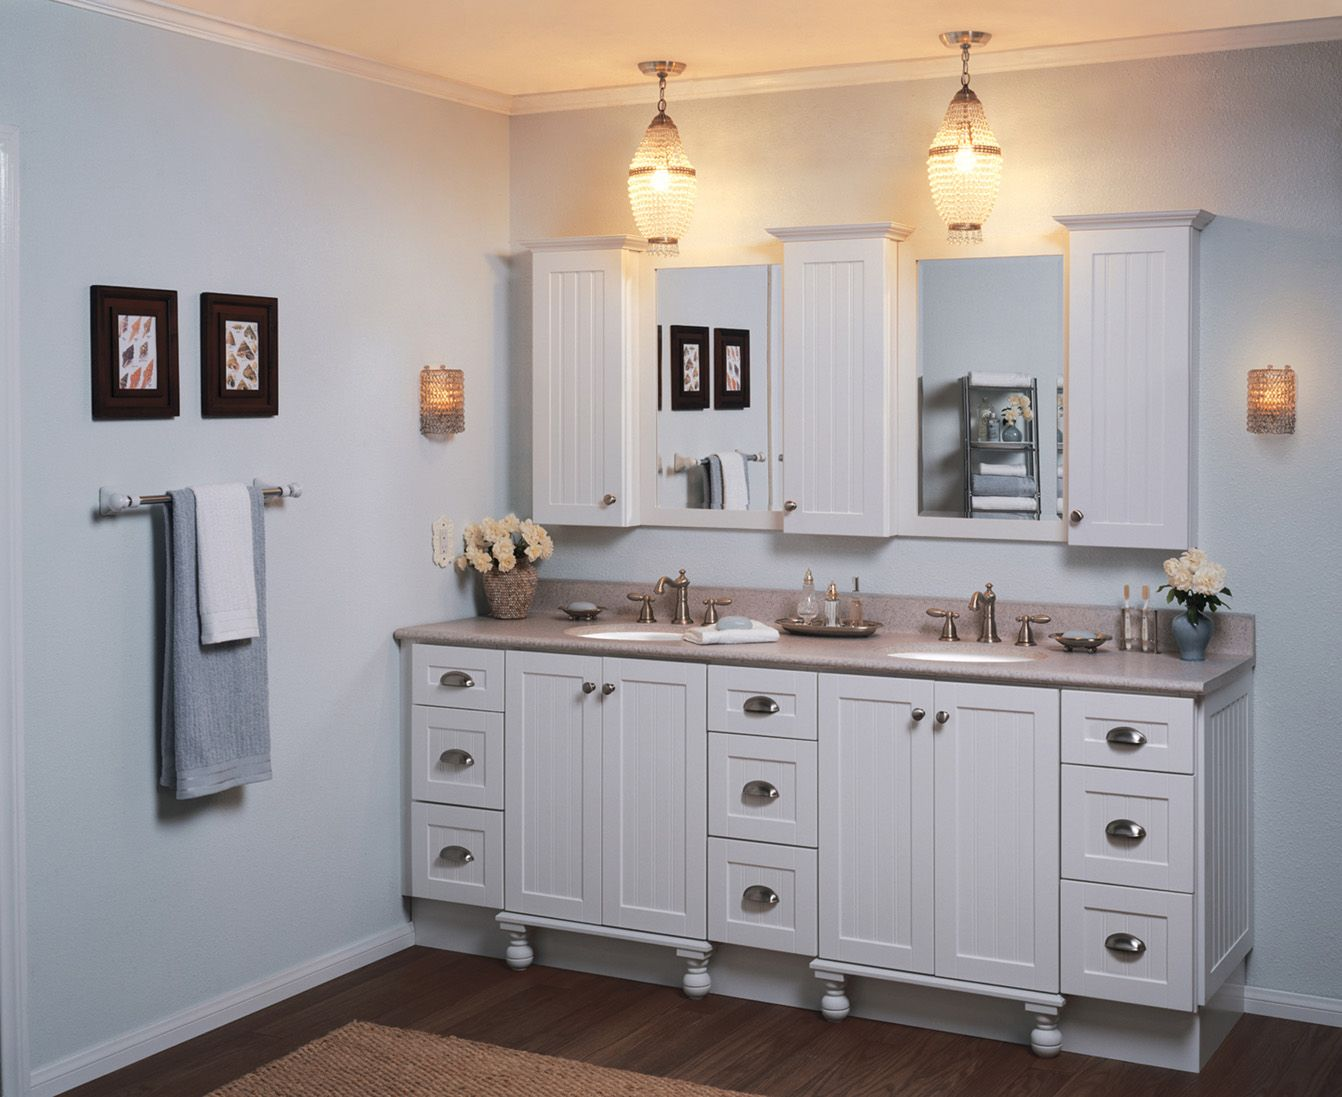 bathroom mirrors over vanity | Ideas Using Mirrors, Wall Hutches ...